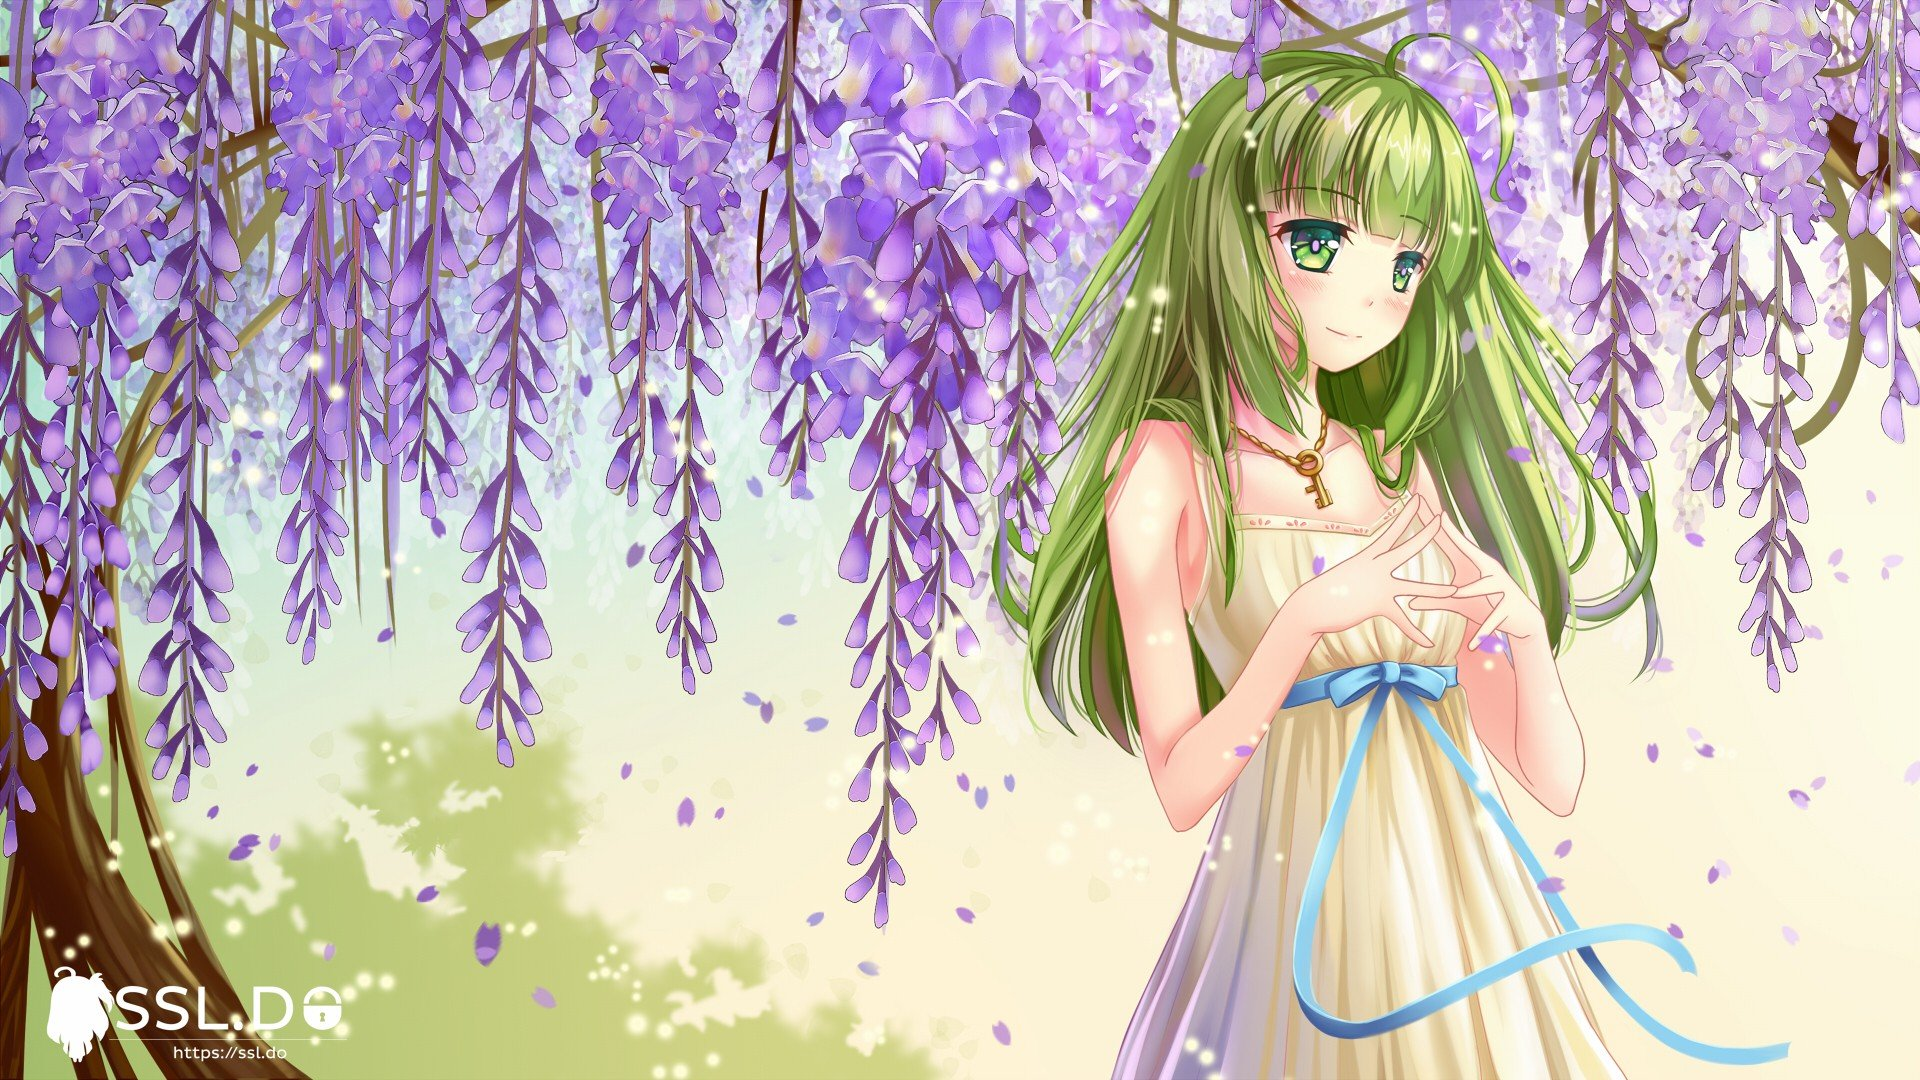 Anime girl with green hair and green eyes